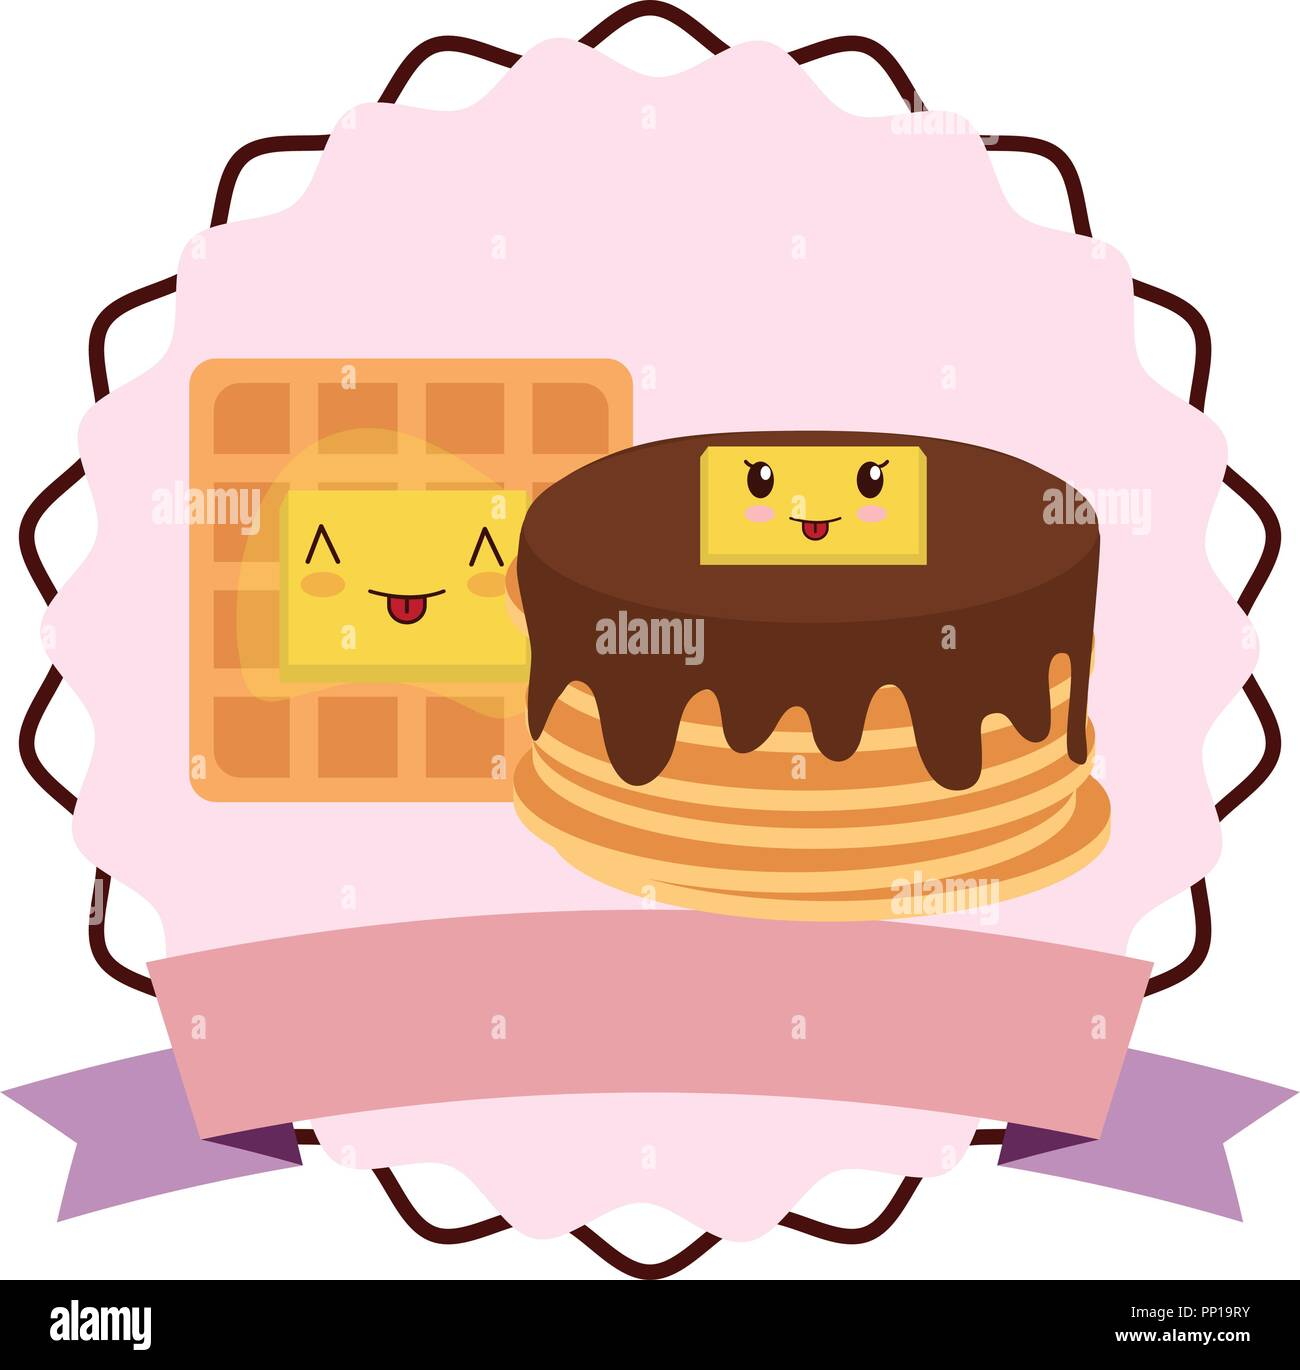 emblem with kawaii pancakes and waffle over white background, vector illustration - Stock Image